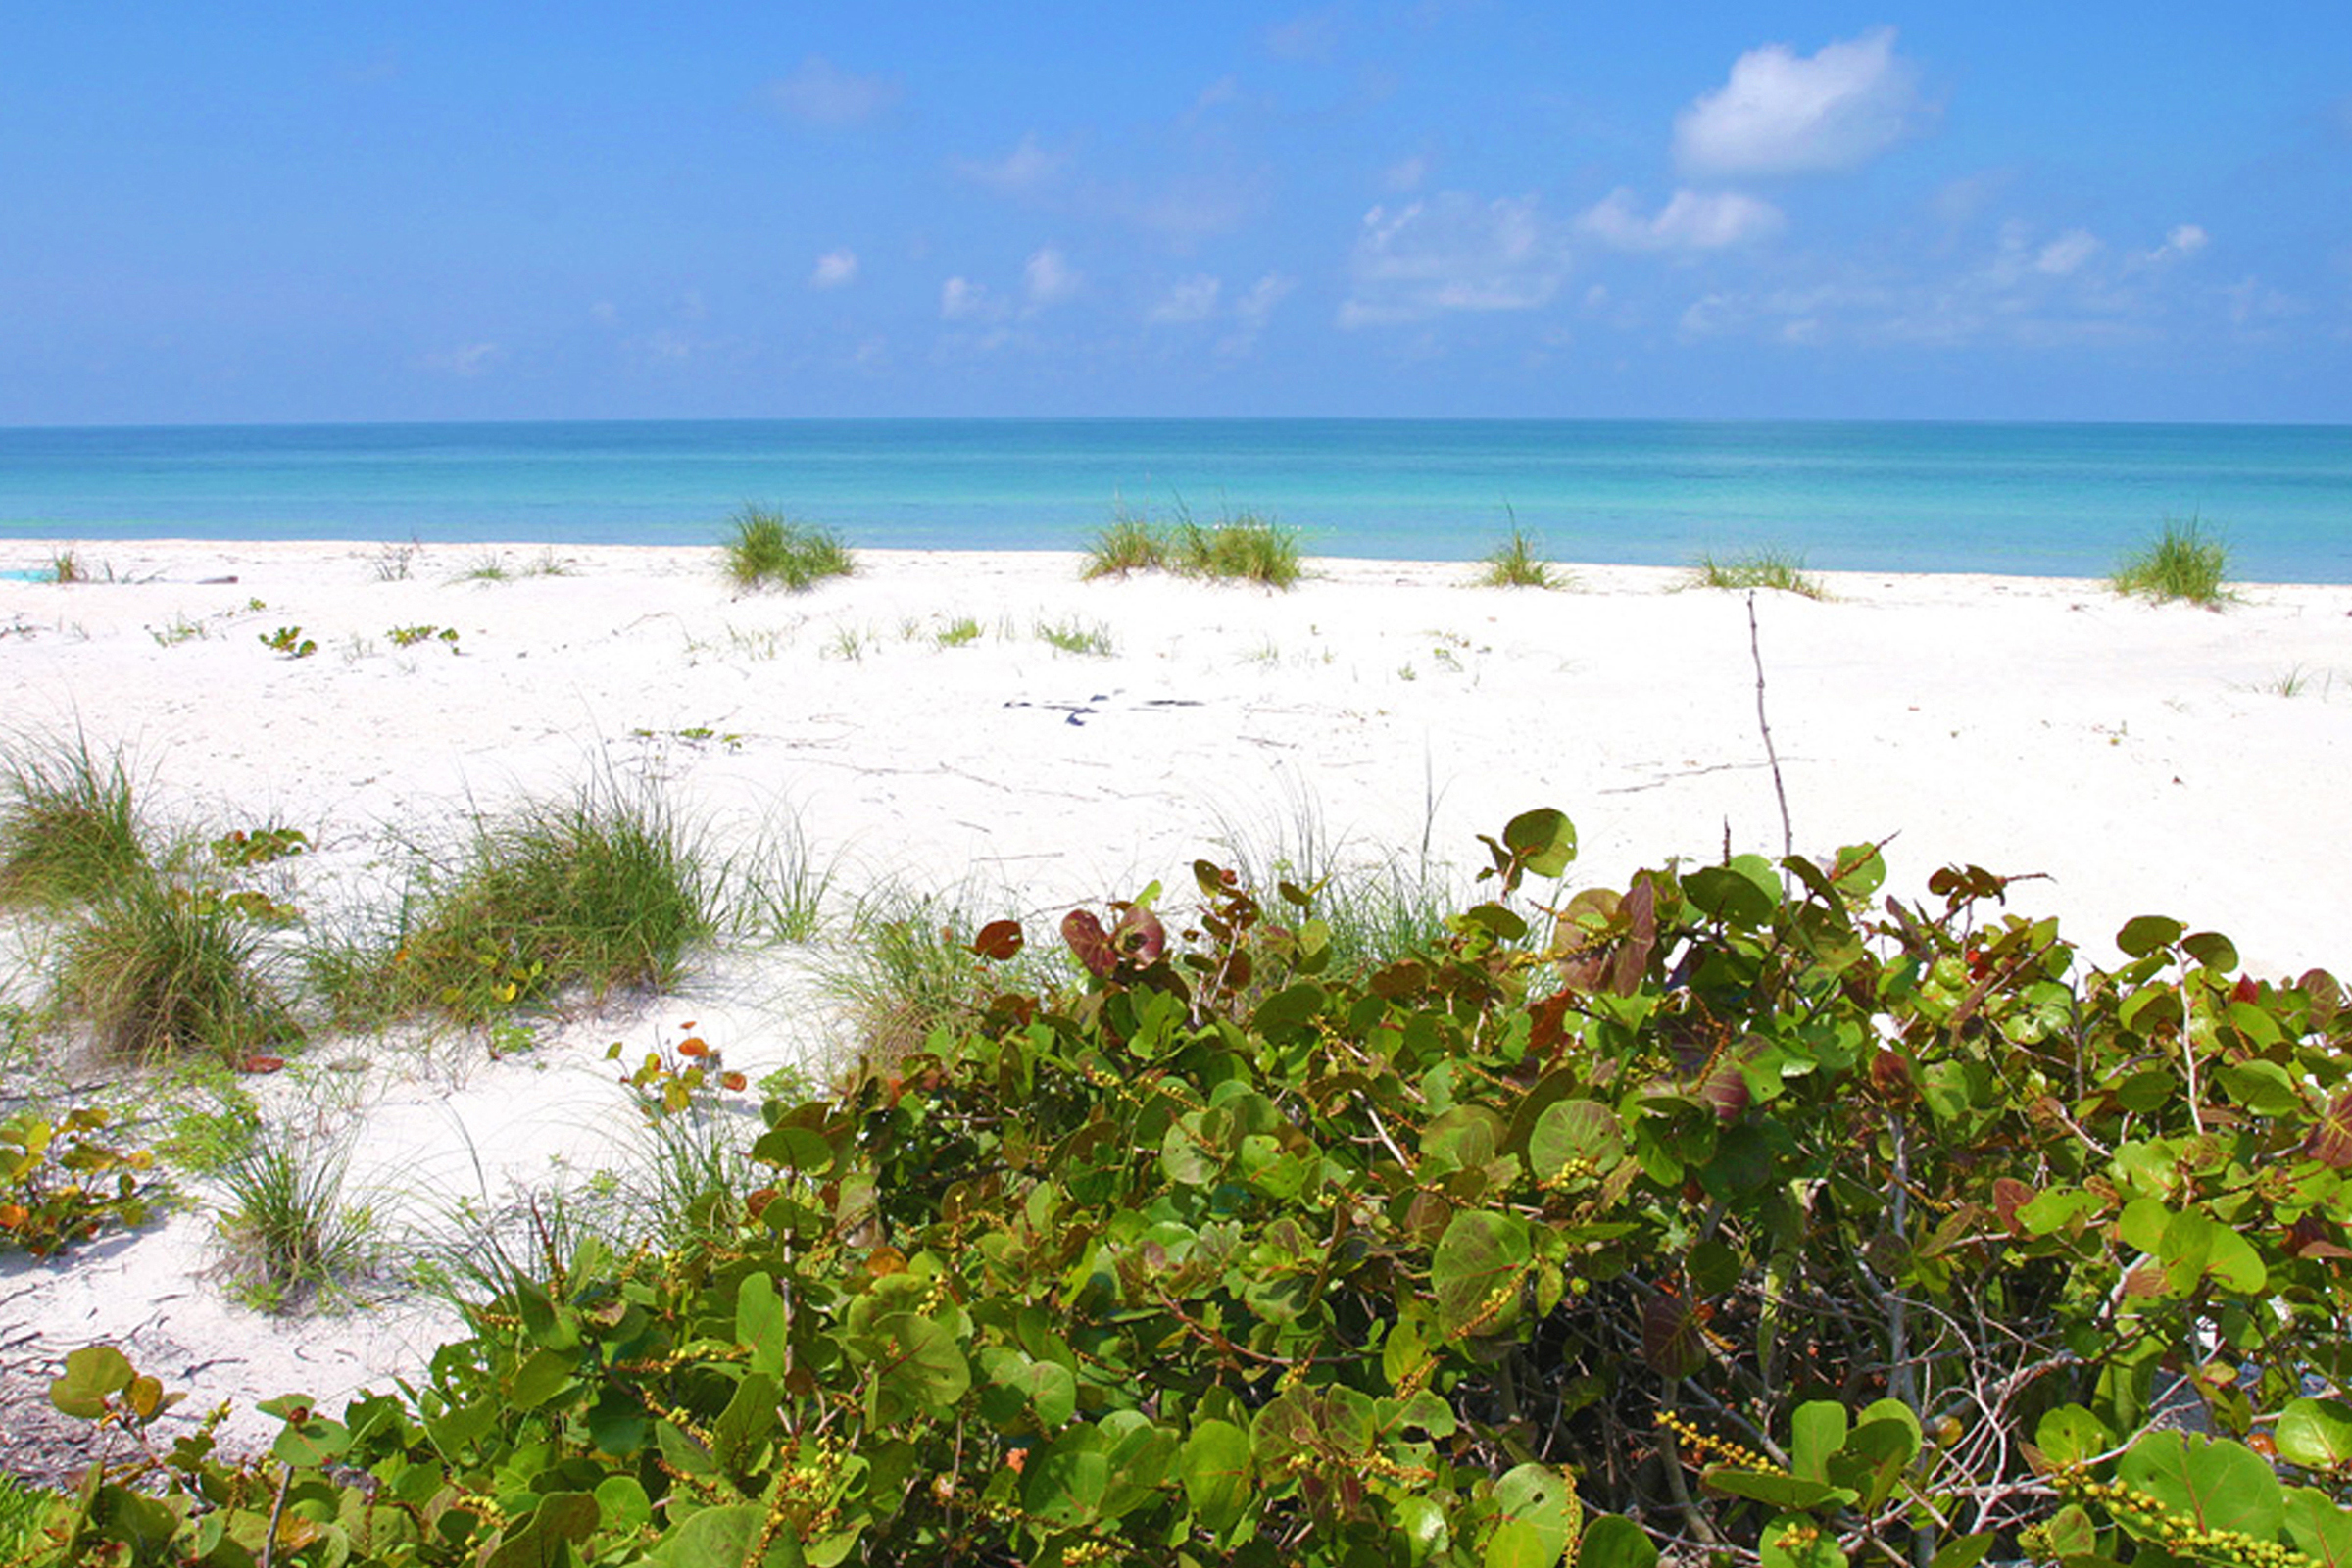 One of the best beaches in Florida